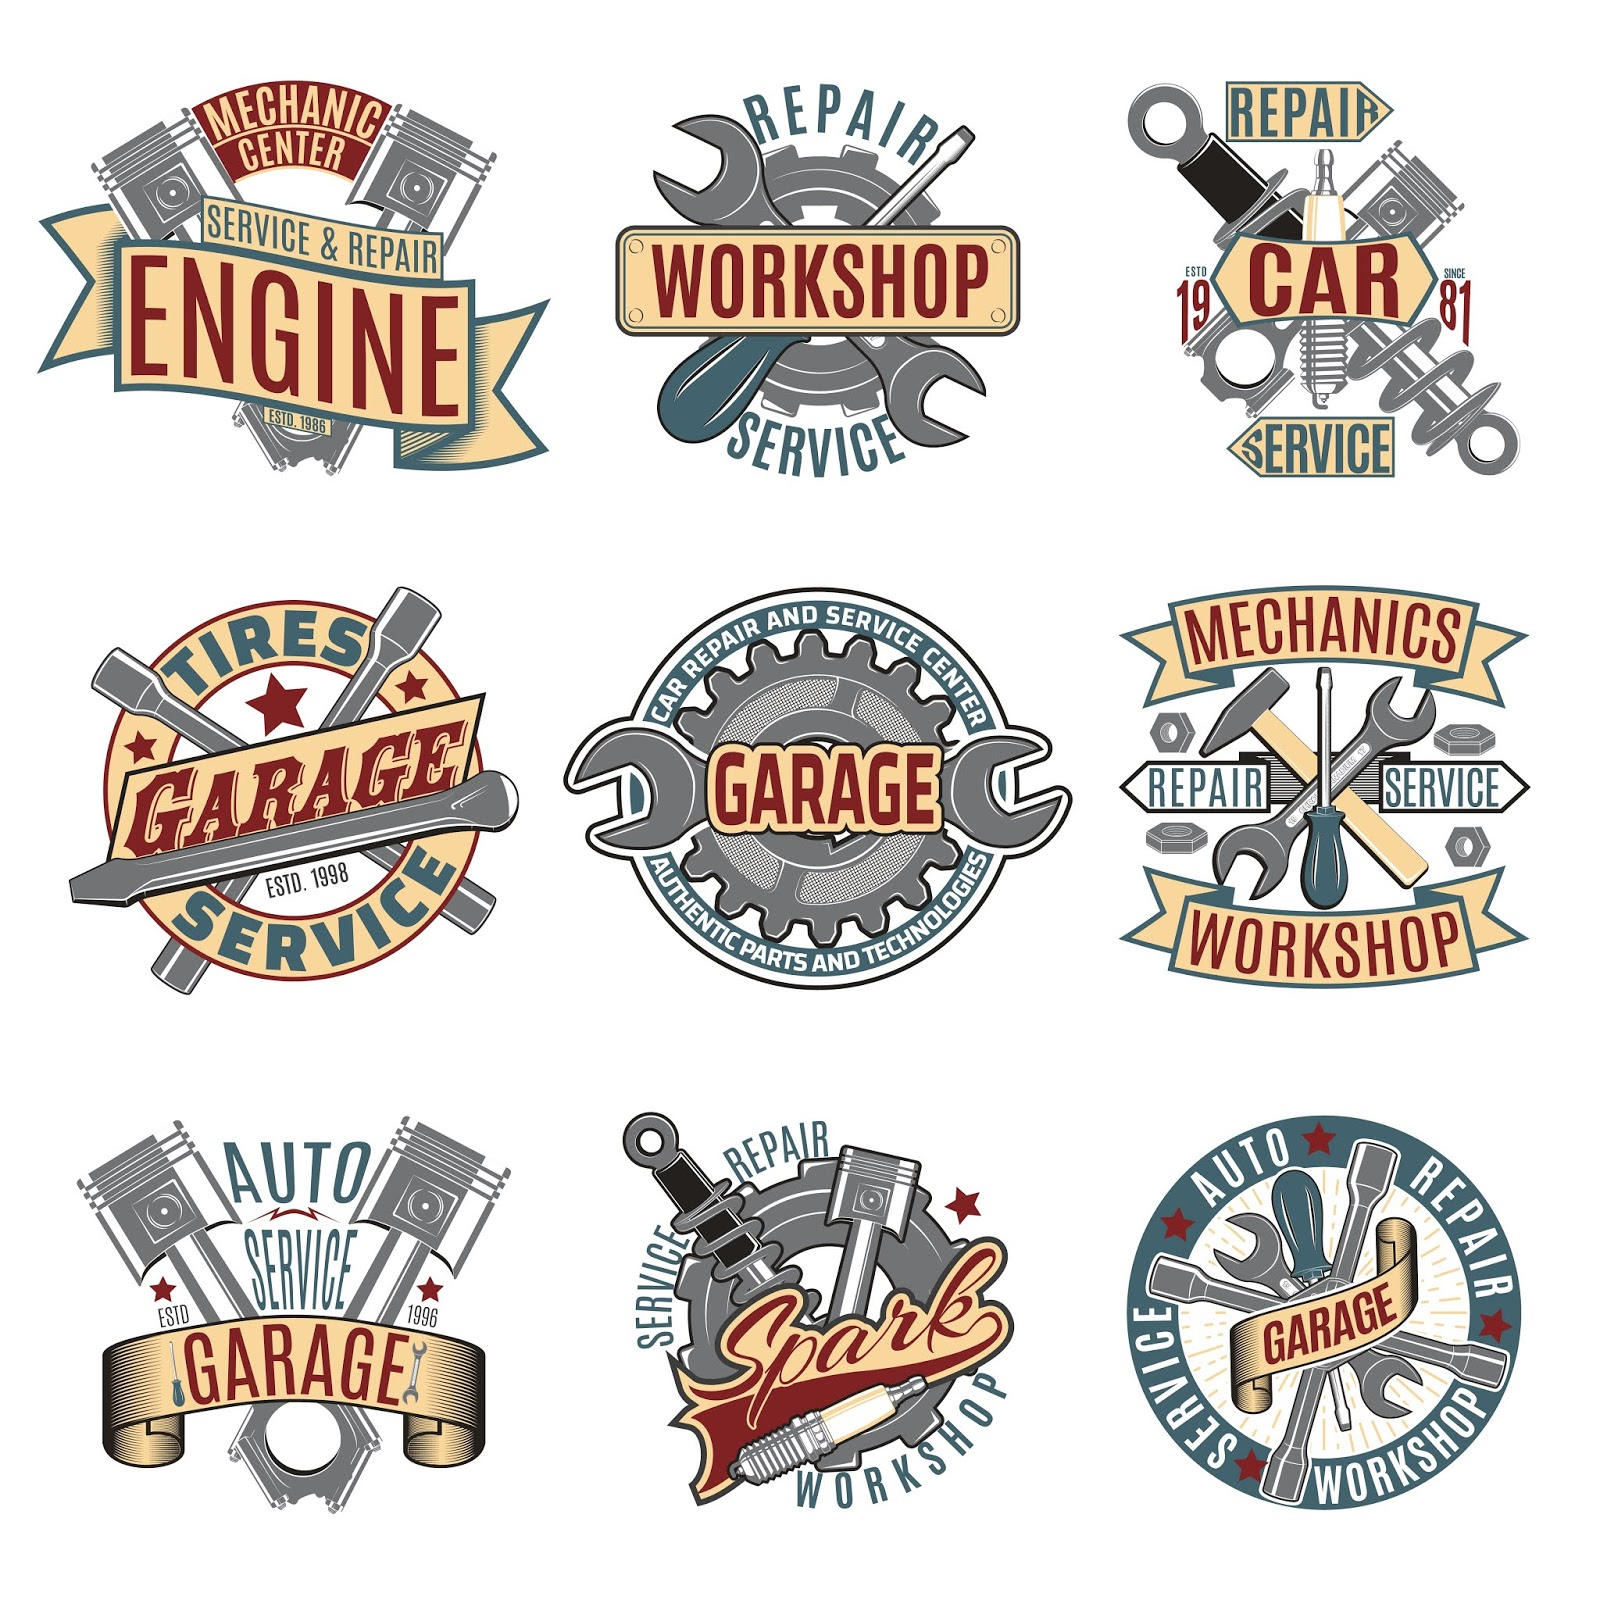 A set of vector text logo designs with the highest quality in various magazines